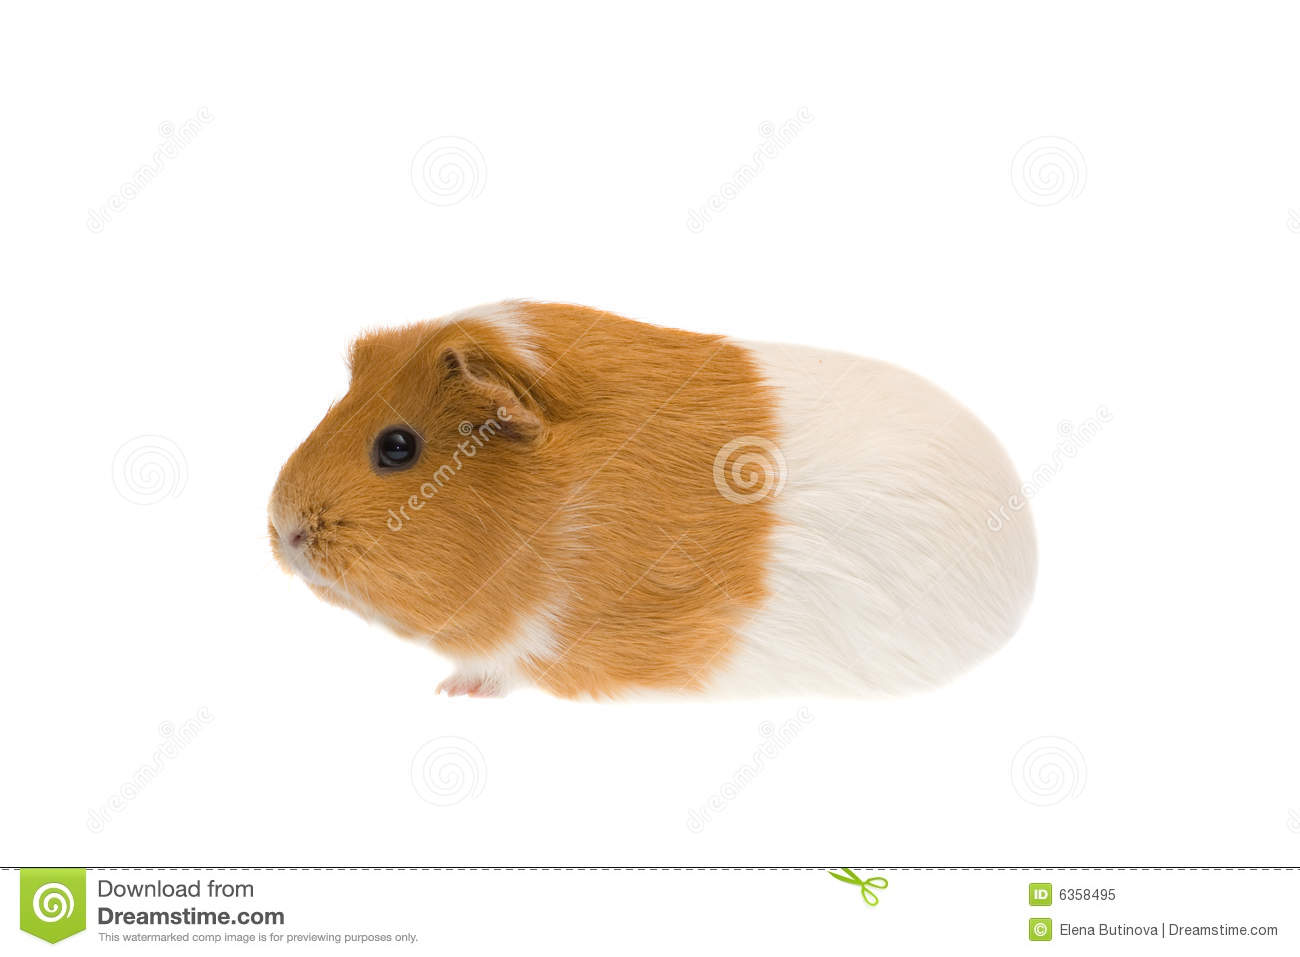 Guinea pig royalty free stock photo image 6358495 for Guinea pig pictures free